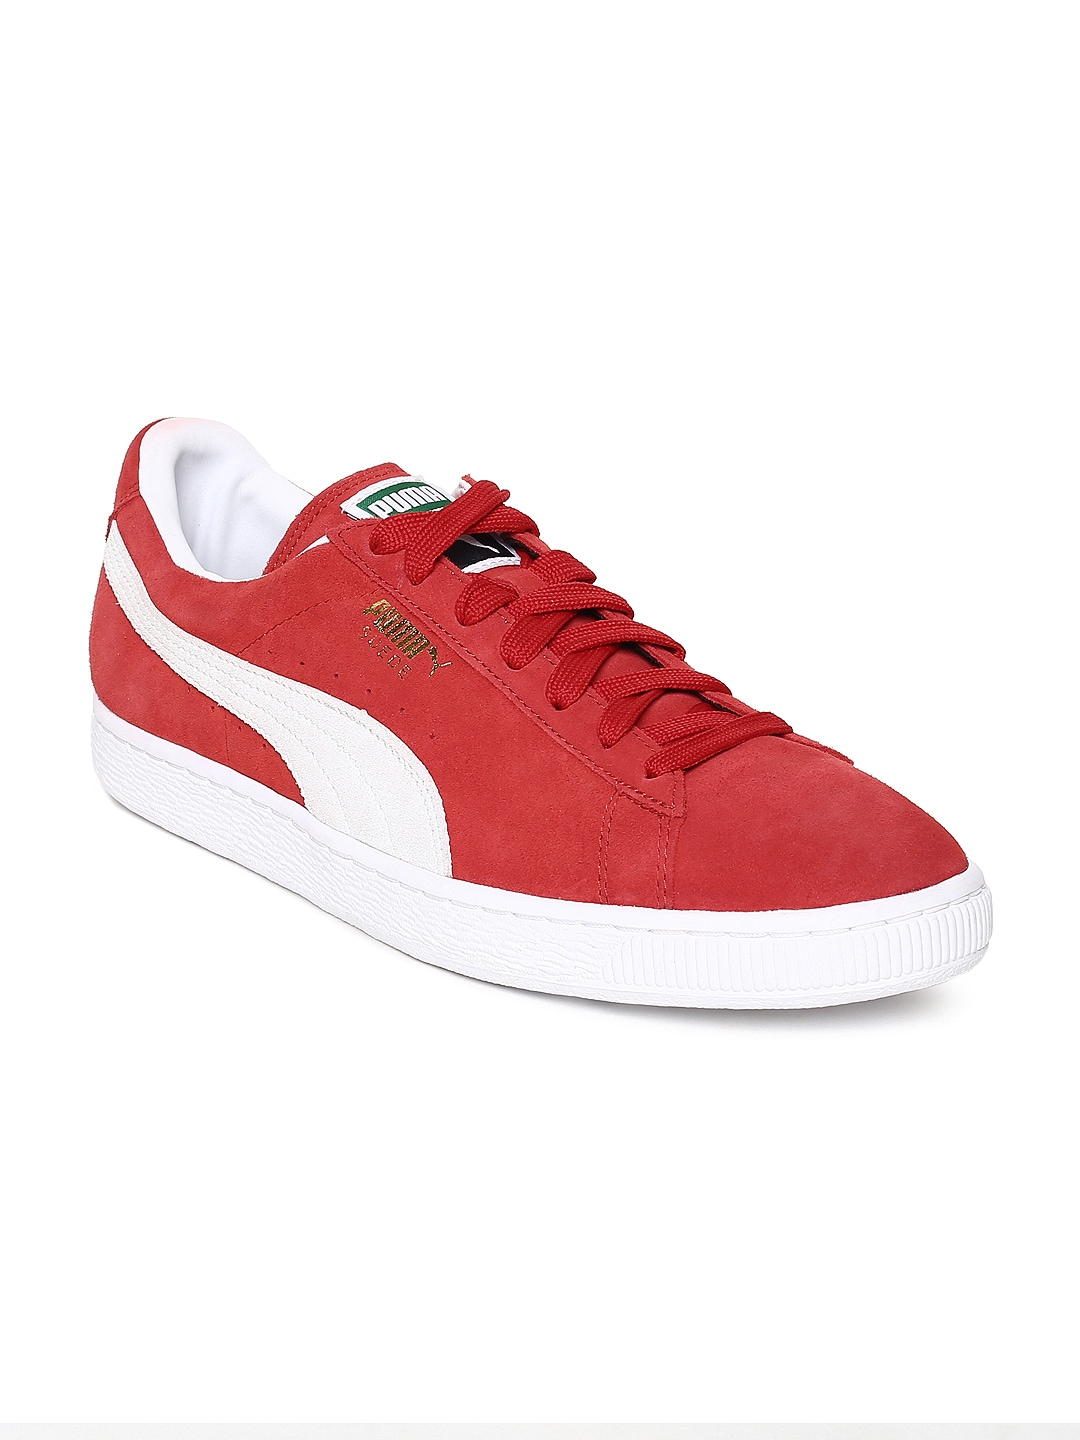 Red ClassicTeam Sneakers Regal Puma Suede Men bIYE9WeDH2